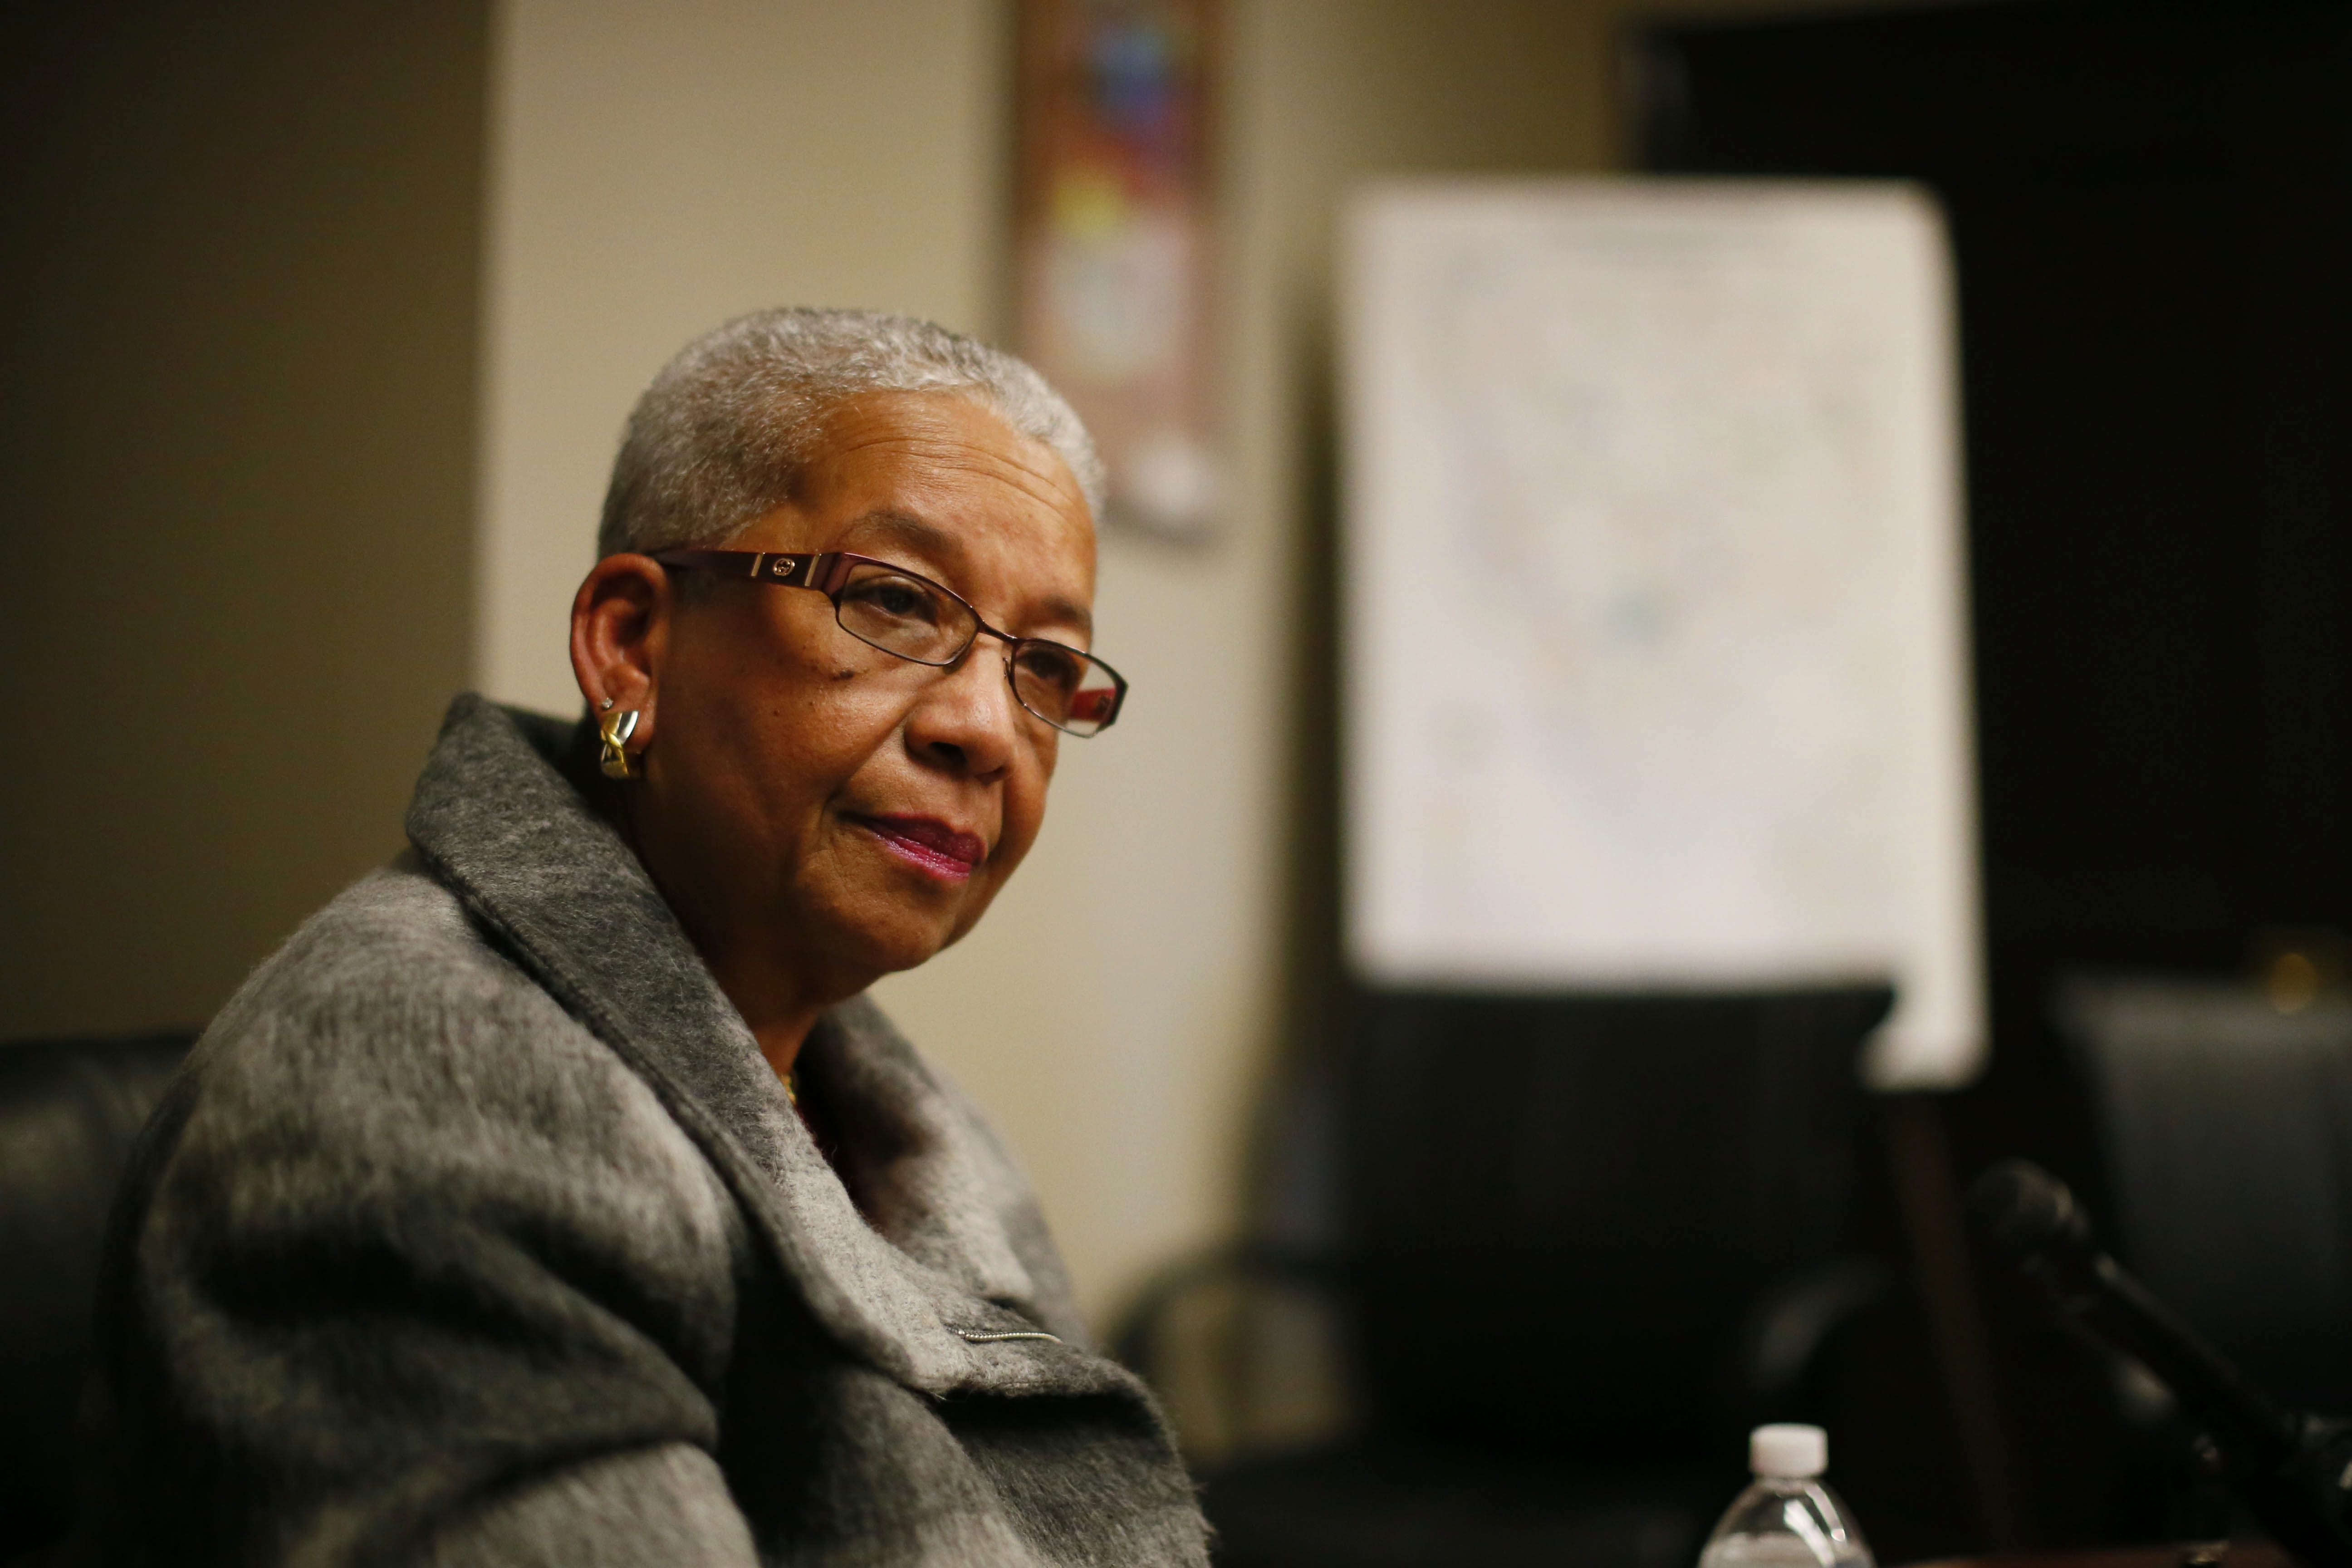 Barbara Seals-Nevergold, president of the Buffalo Board of Education, has been under fire by fellow board member Carl Paladino, who has sought her removal from office.